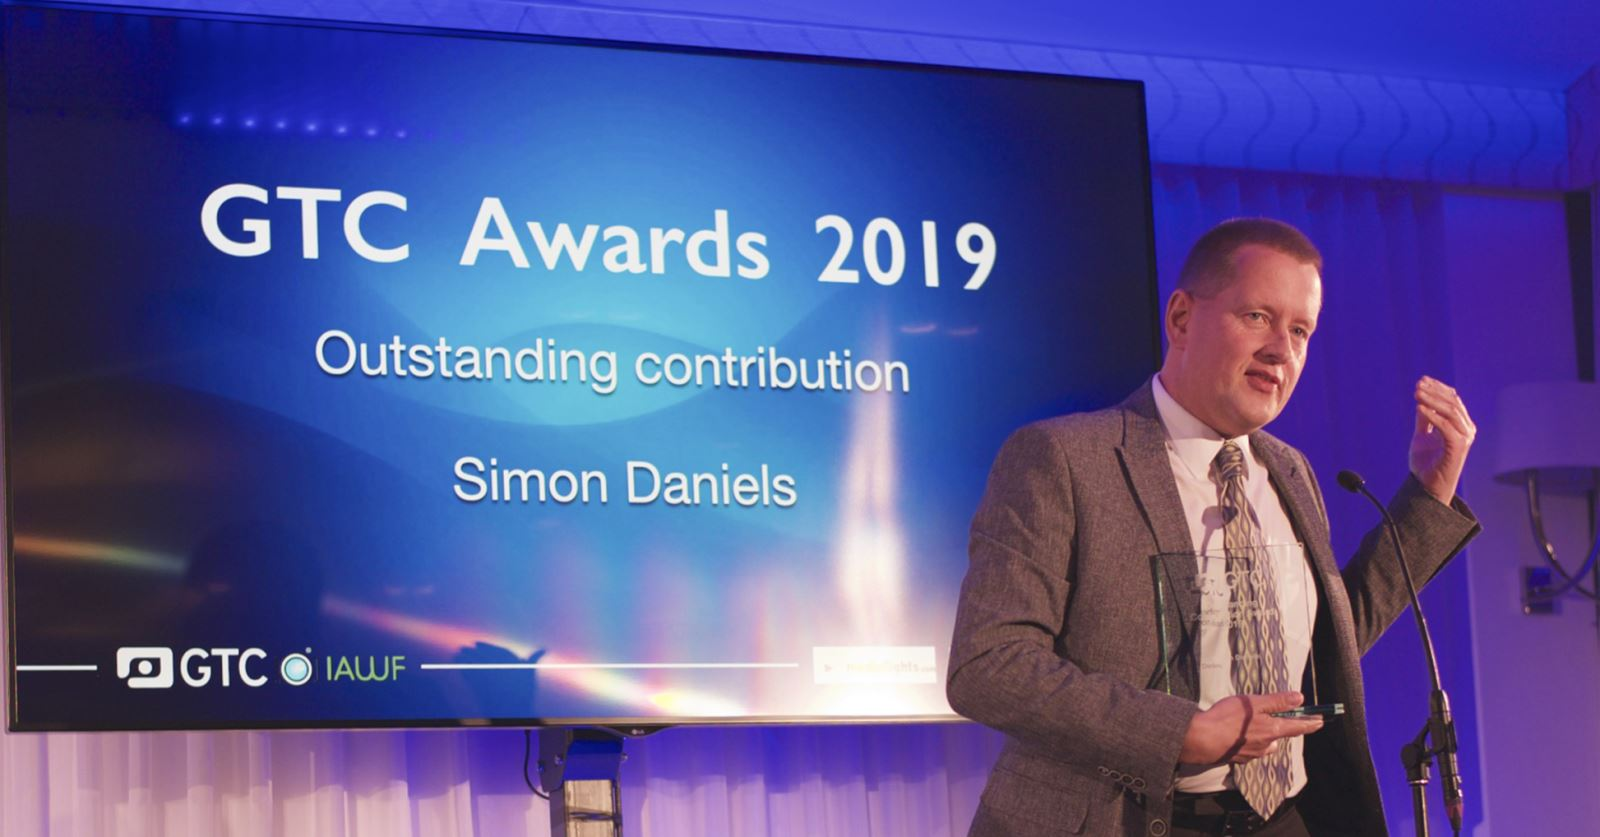 The GTC's Outstanding Contribution Award went to Simon Daniels, whose timely CPR action saved Glenn Hoddle's life